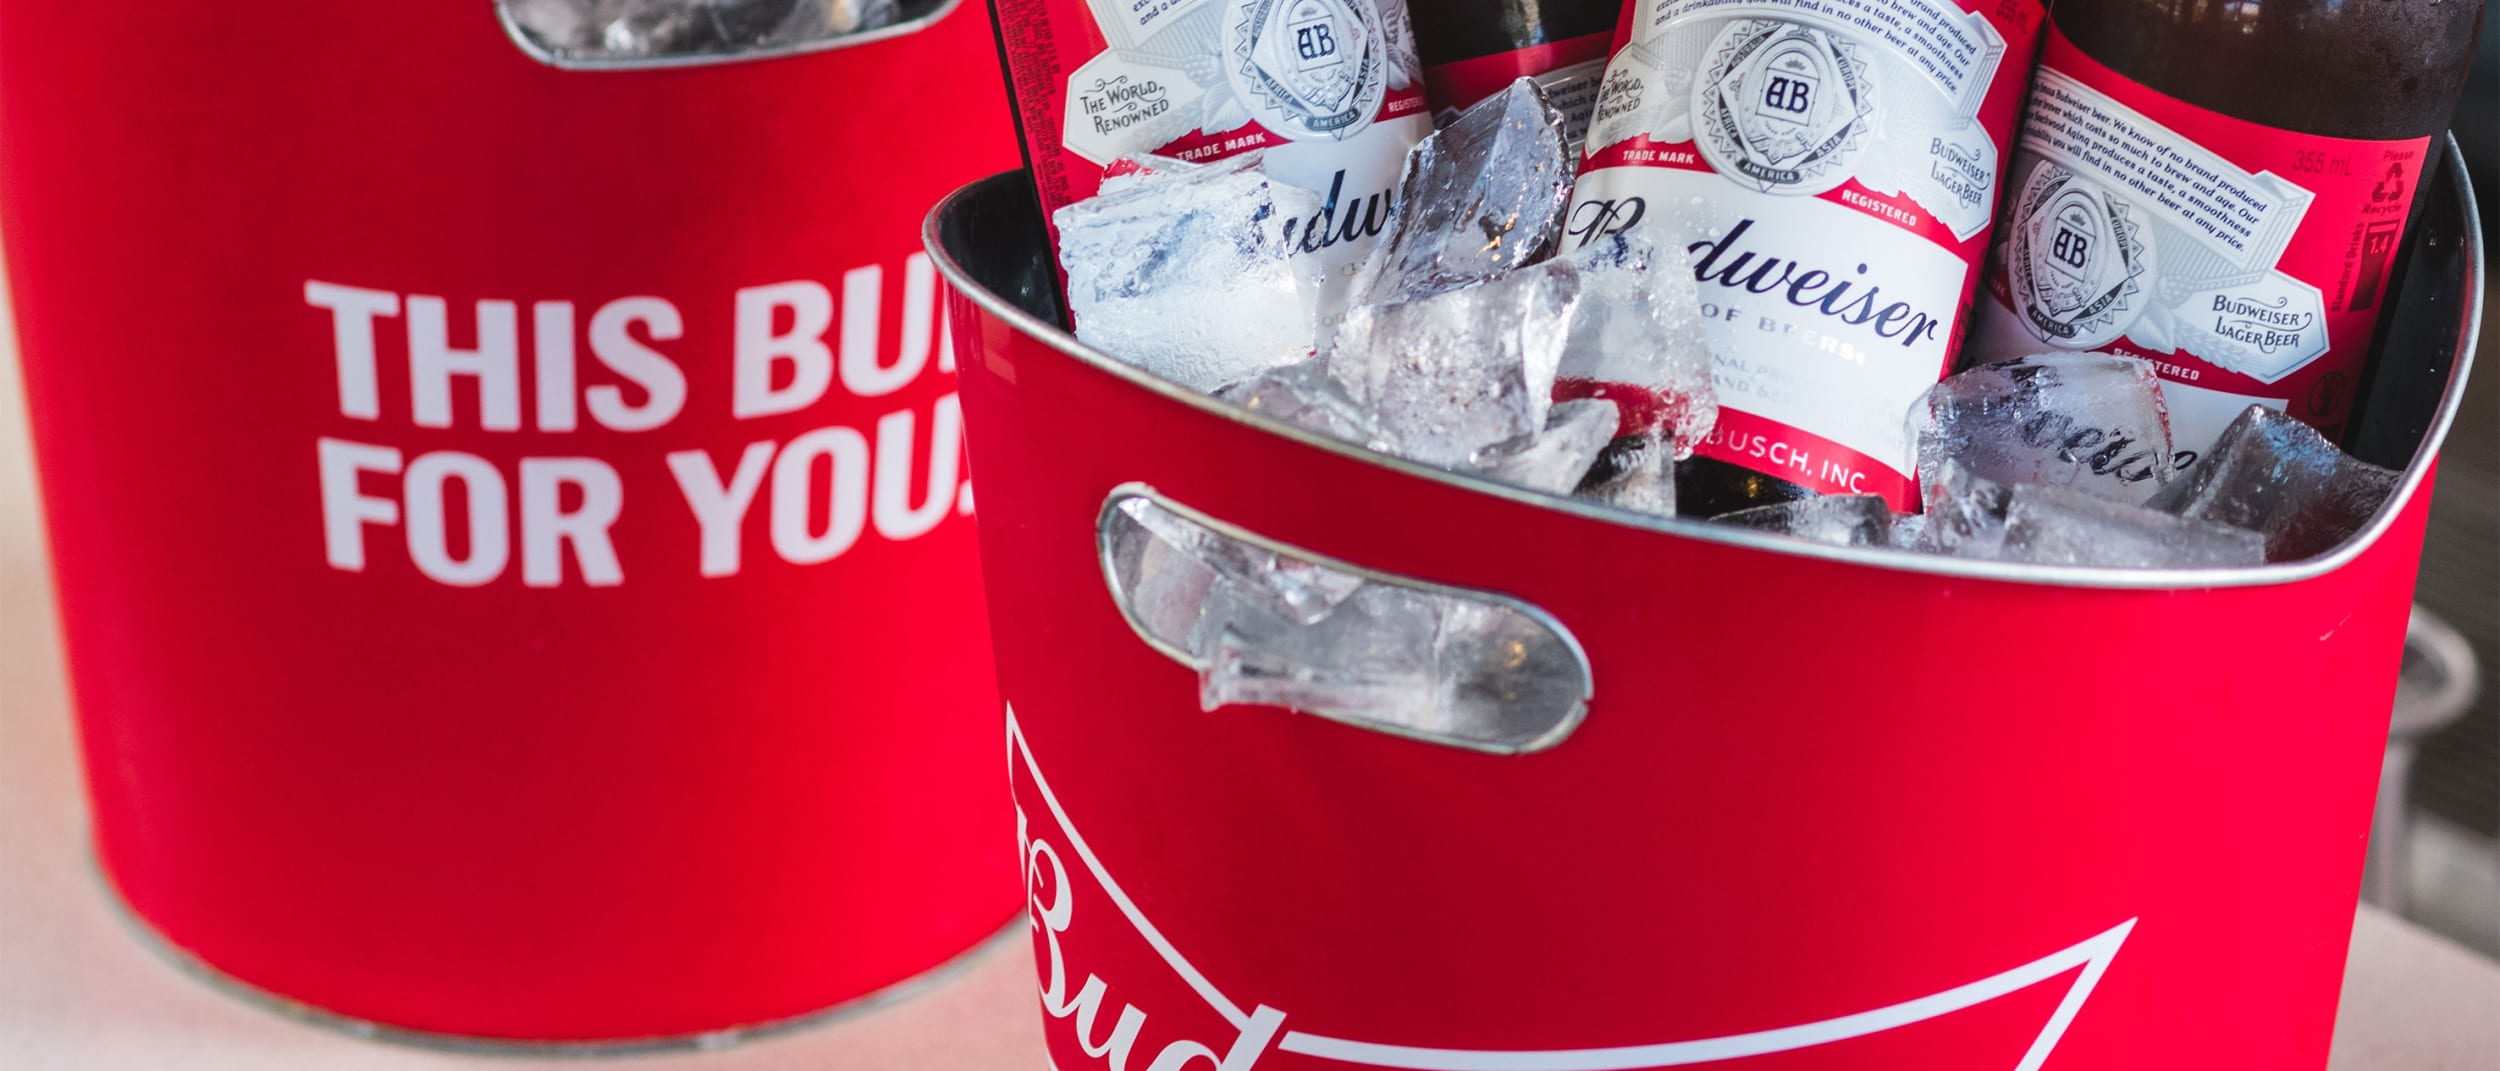 The Sporting Globe: Saturday special $20 buckets of selected beer